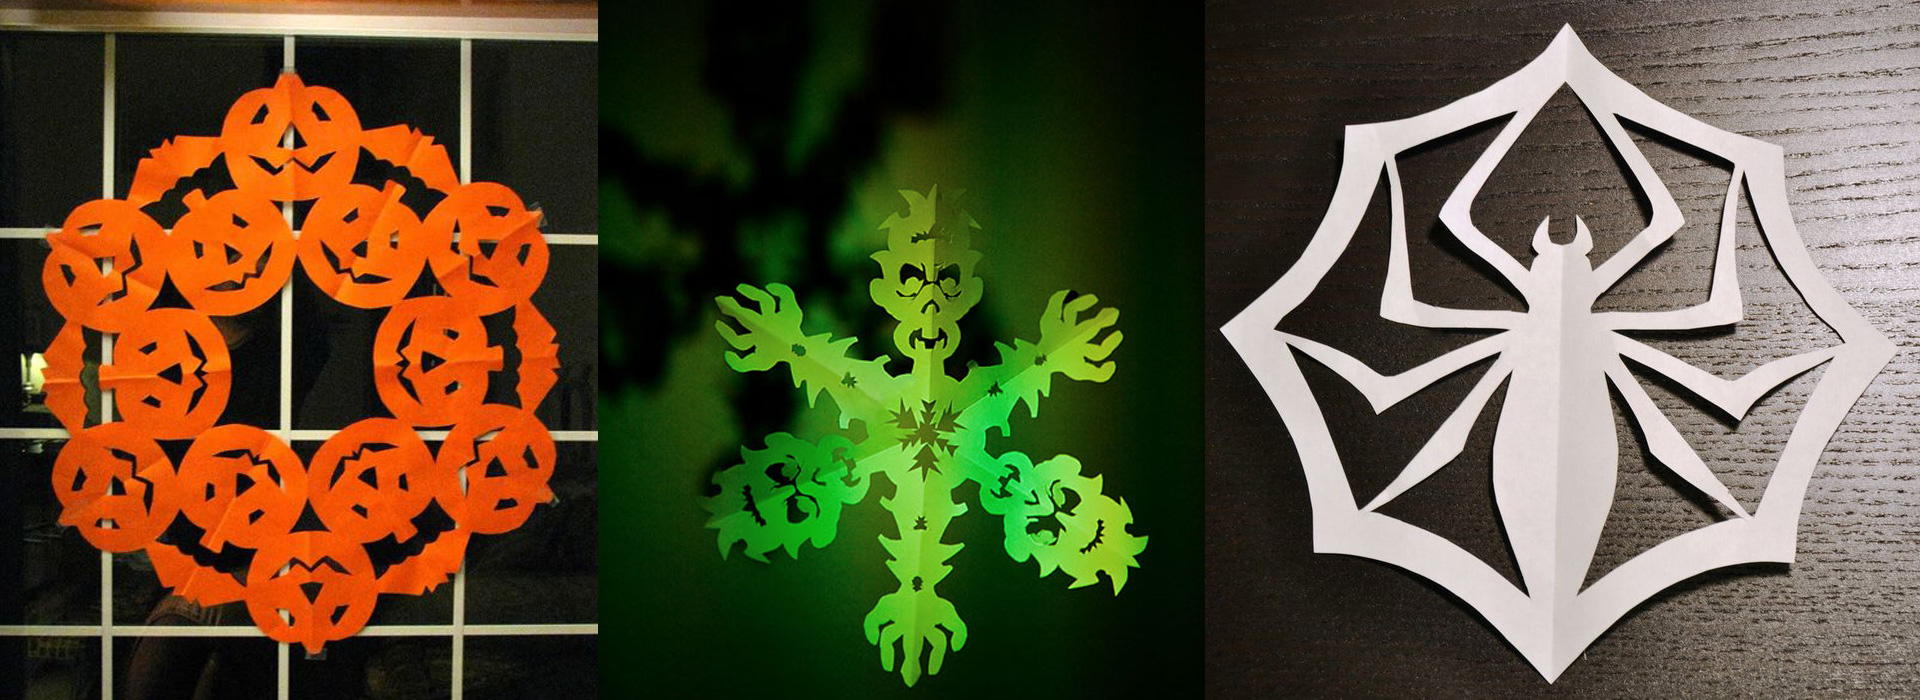 5 Scary Snowflake Templates Perfect for Halloween Decor Crafting ...